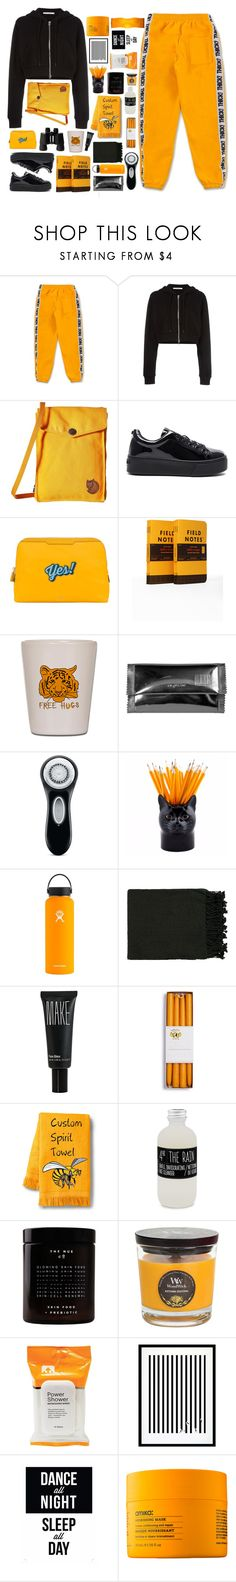 """123 • it's ok to fall, it's ok to get hurt •"" by hellxwaffles ❤ liked on Polyvore featuring Givenchy, Fjällräven, Kenzo, Anya Hindmarch, Maison Margiela, Clarisonic, Hydro Flask, Surya, Make and Belmondo"